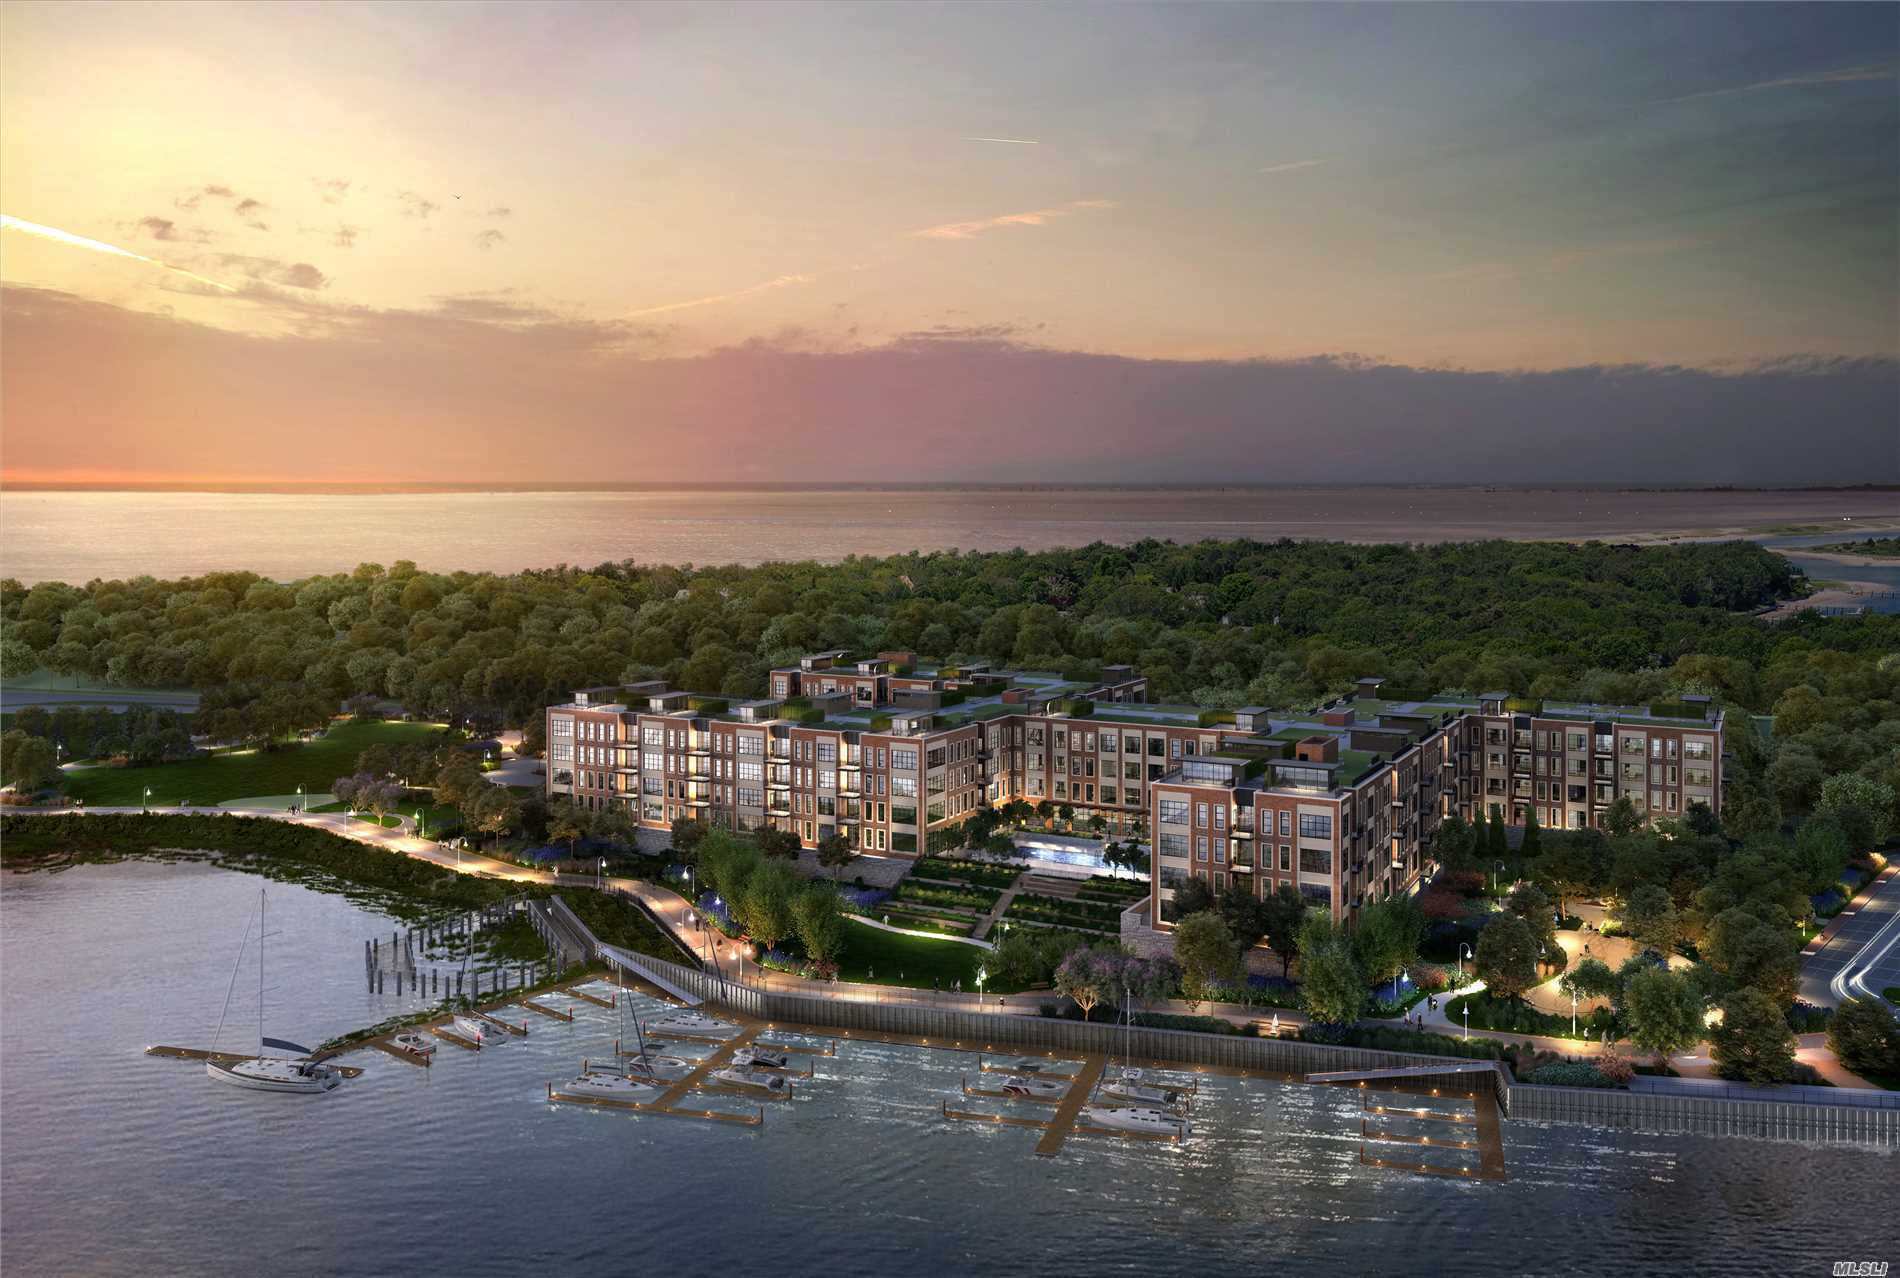 Property for sale at 100 Garvies Point Road # 1232, Glen Cove NY 11542, Glen Cove,  New York 11542